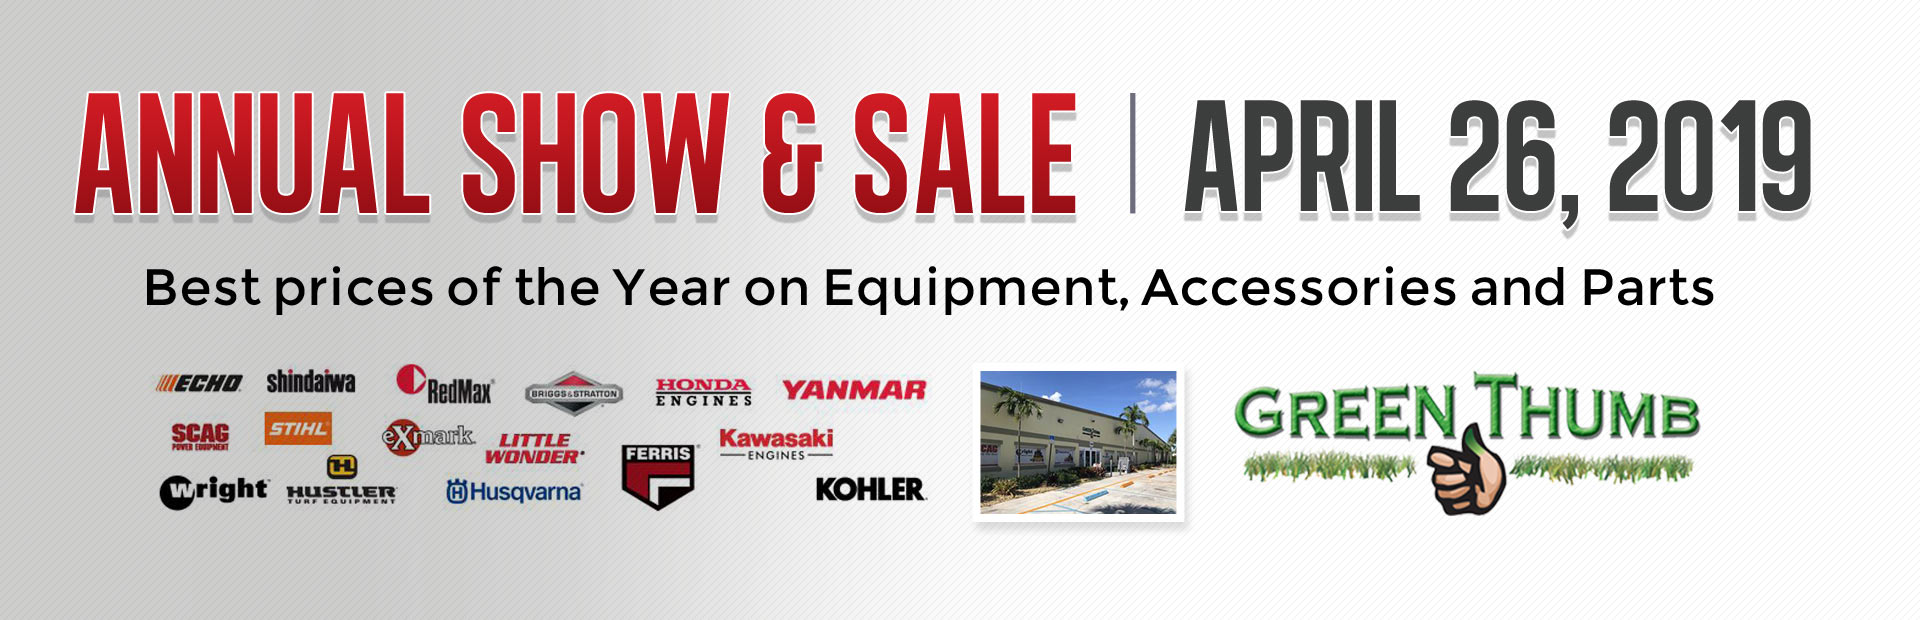 Annual show & sale: Best prices of the year on equipment, accessories and parts